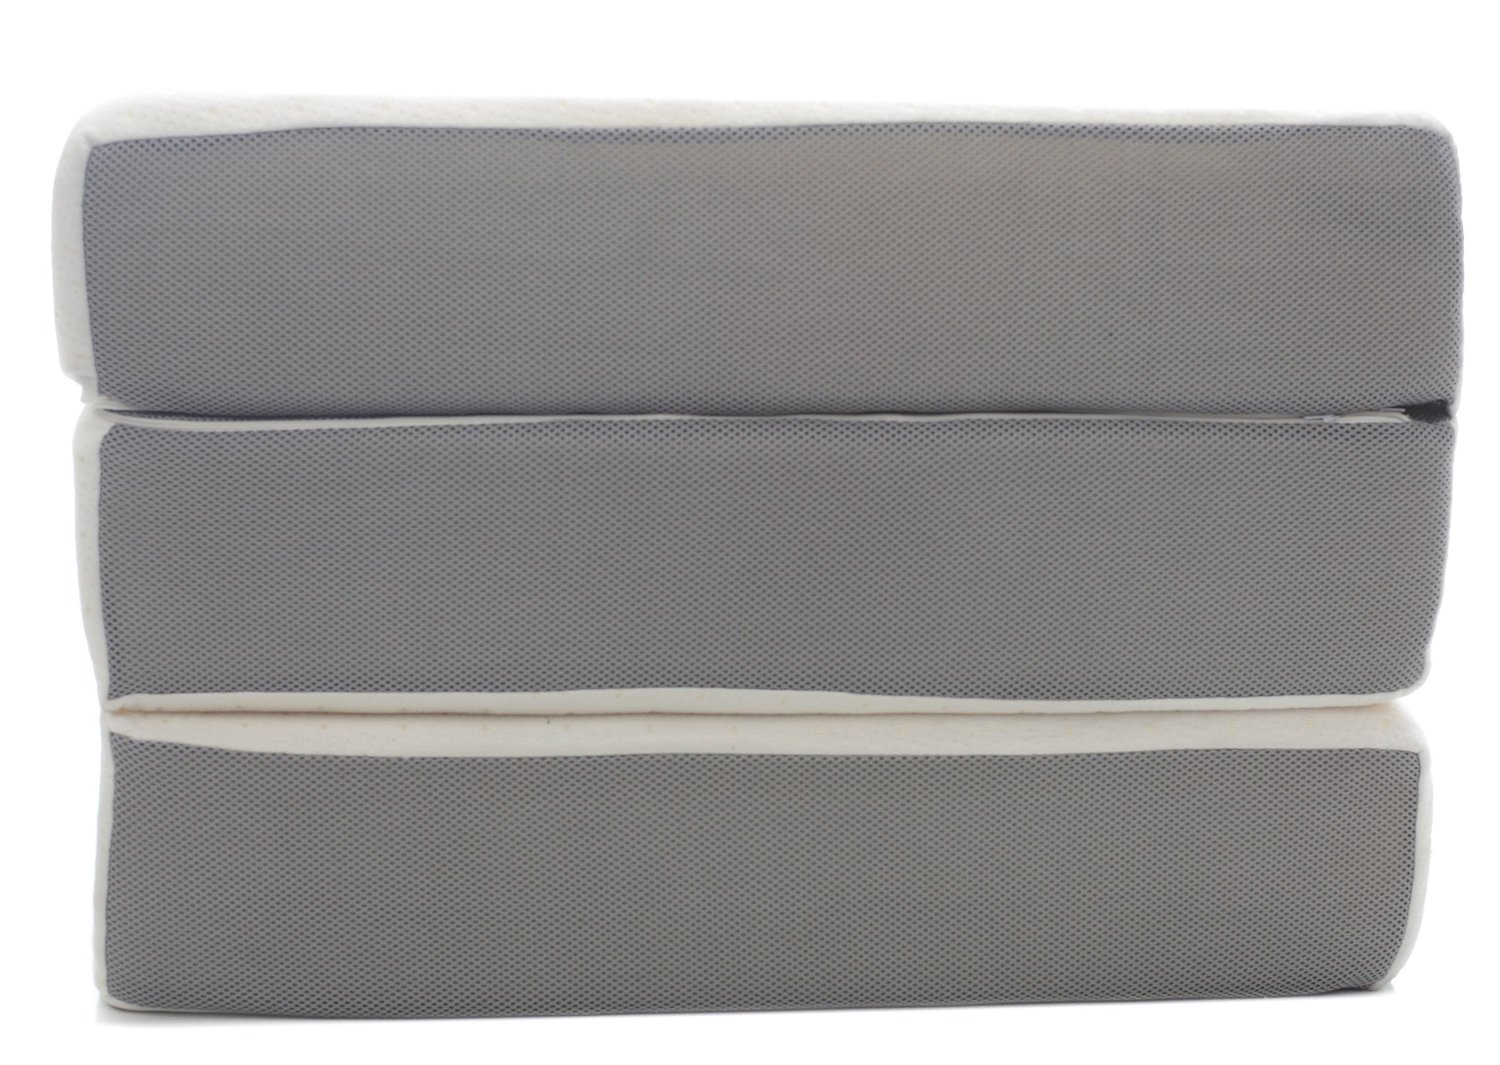 Foldable futon mattress singapore for Tri fold futon mattress cover